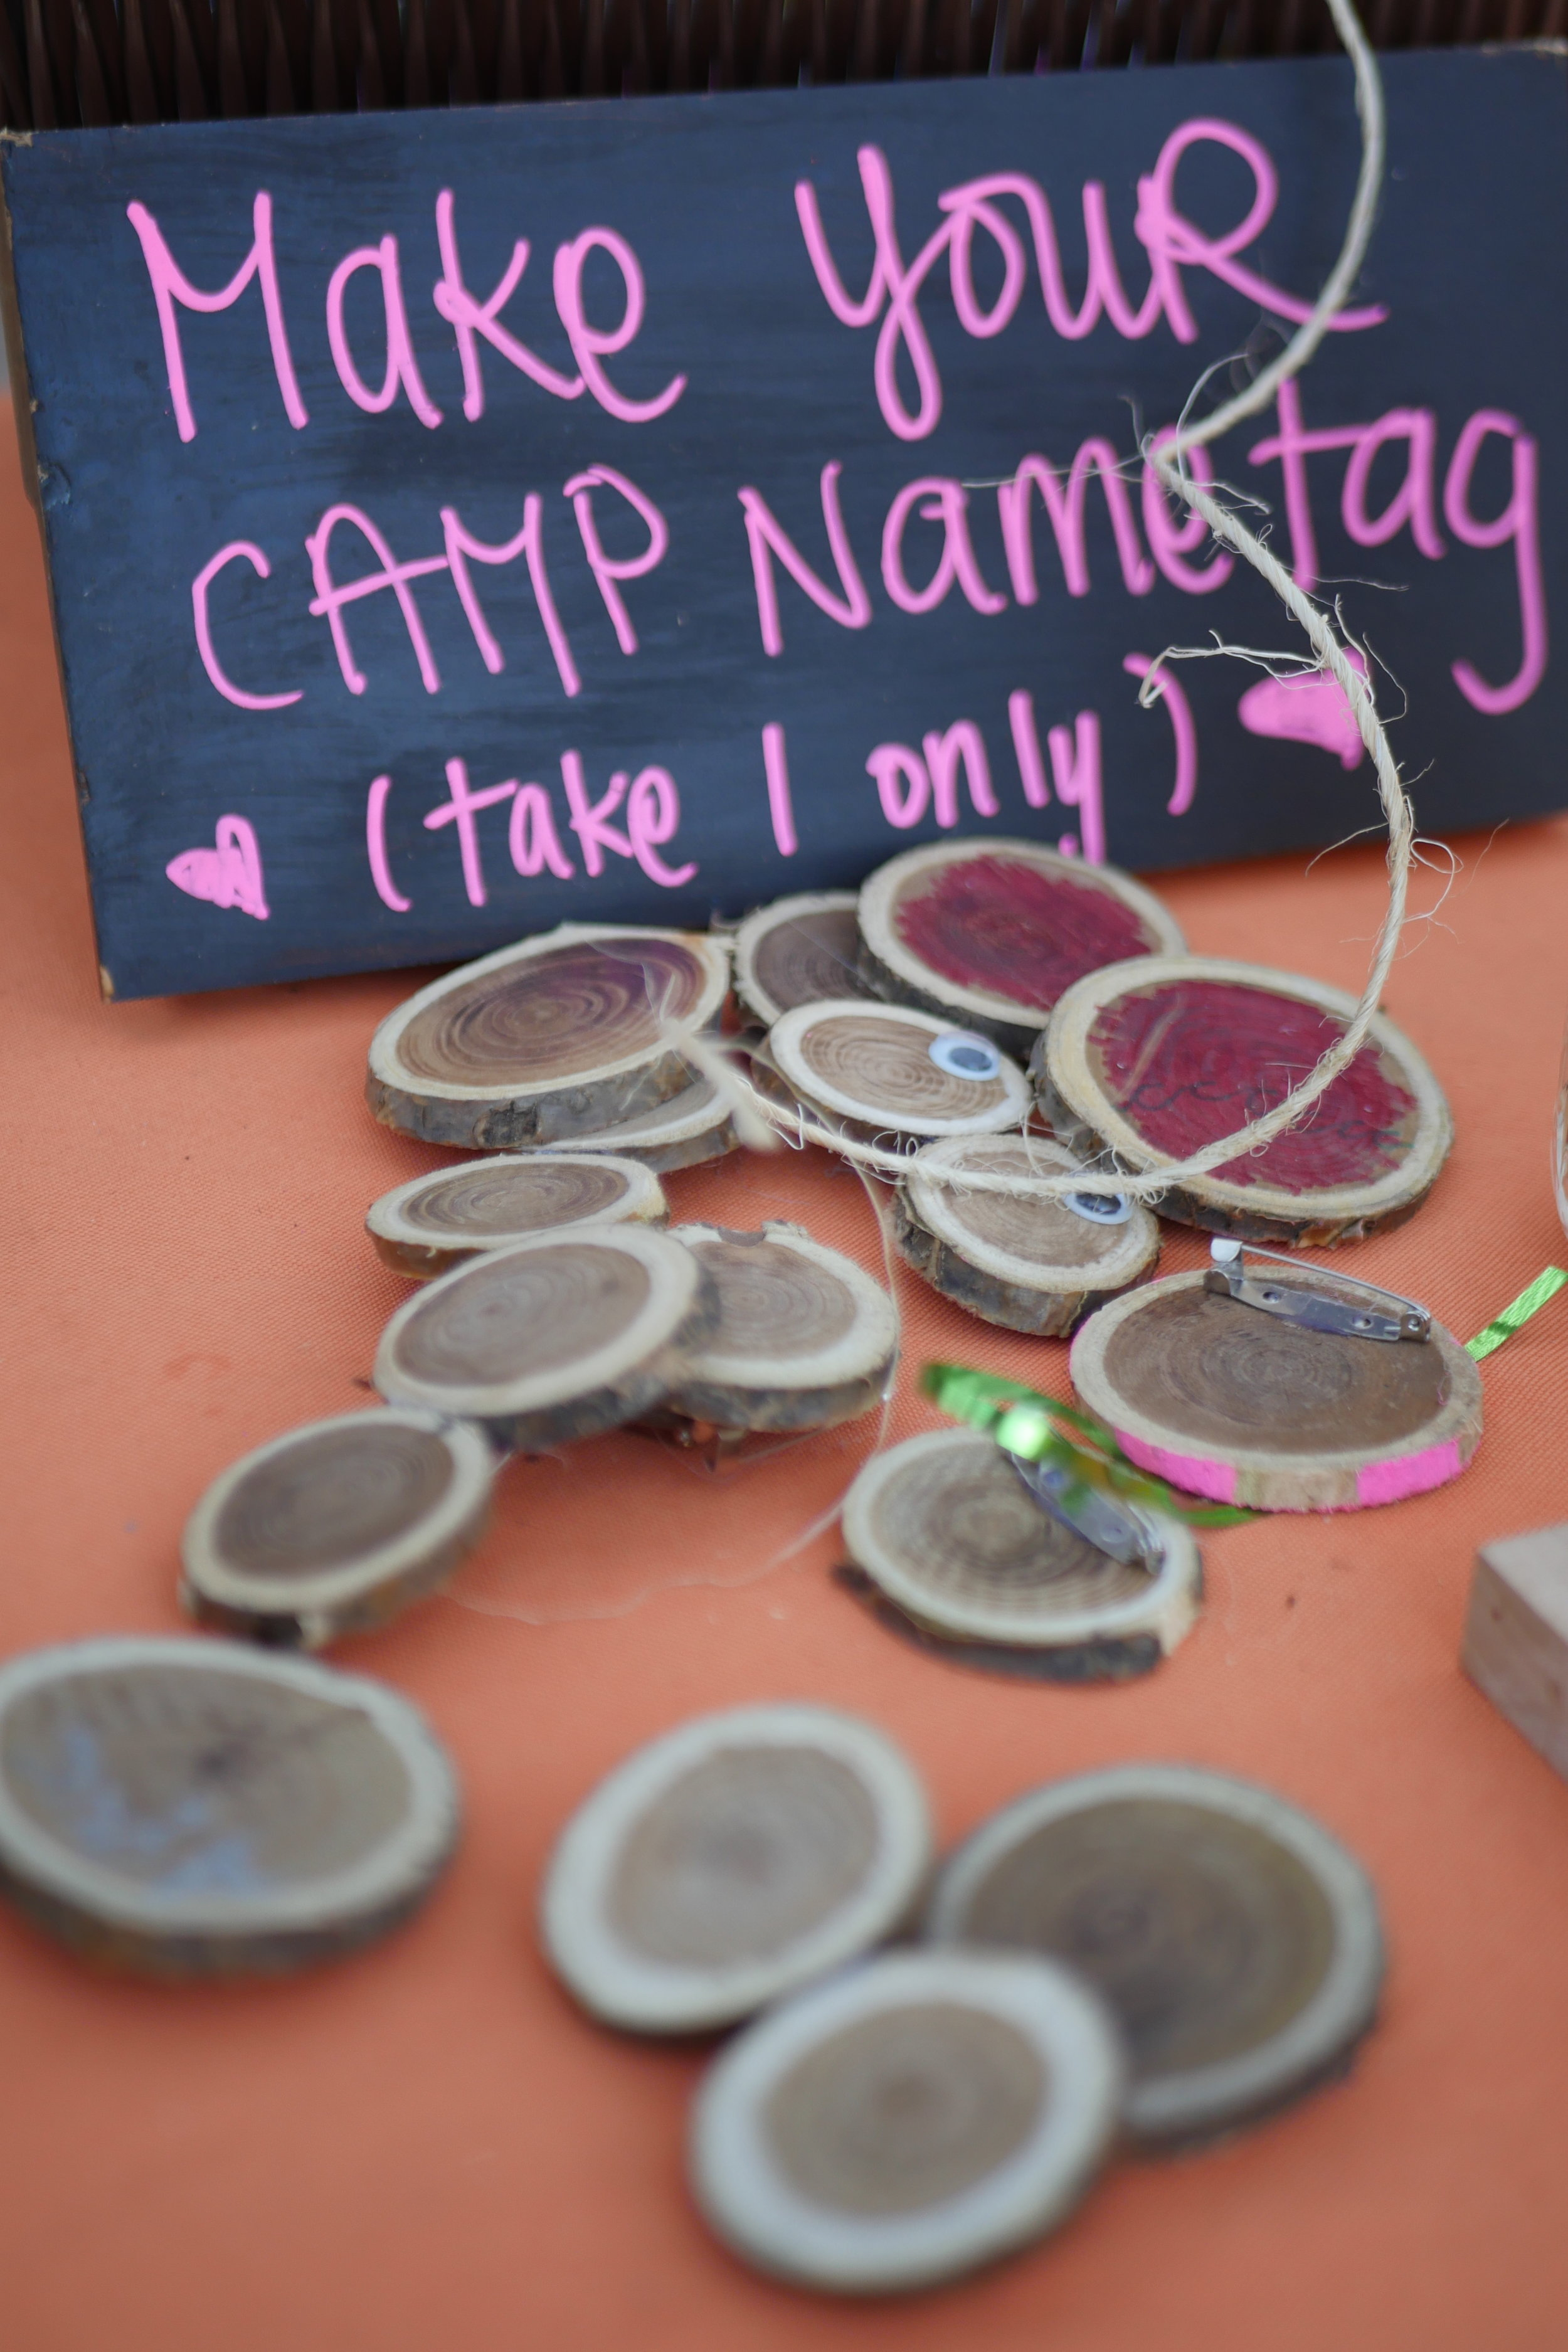 Make your own camp name tag through arts and crafts